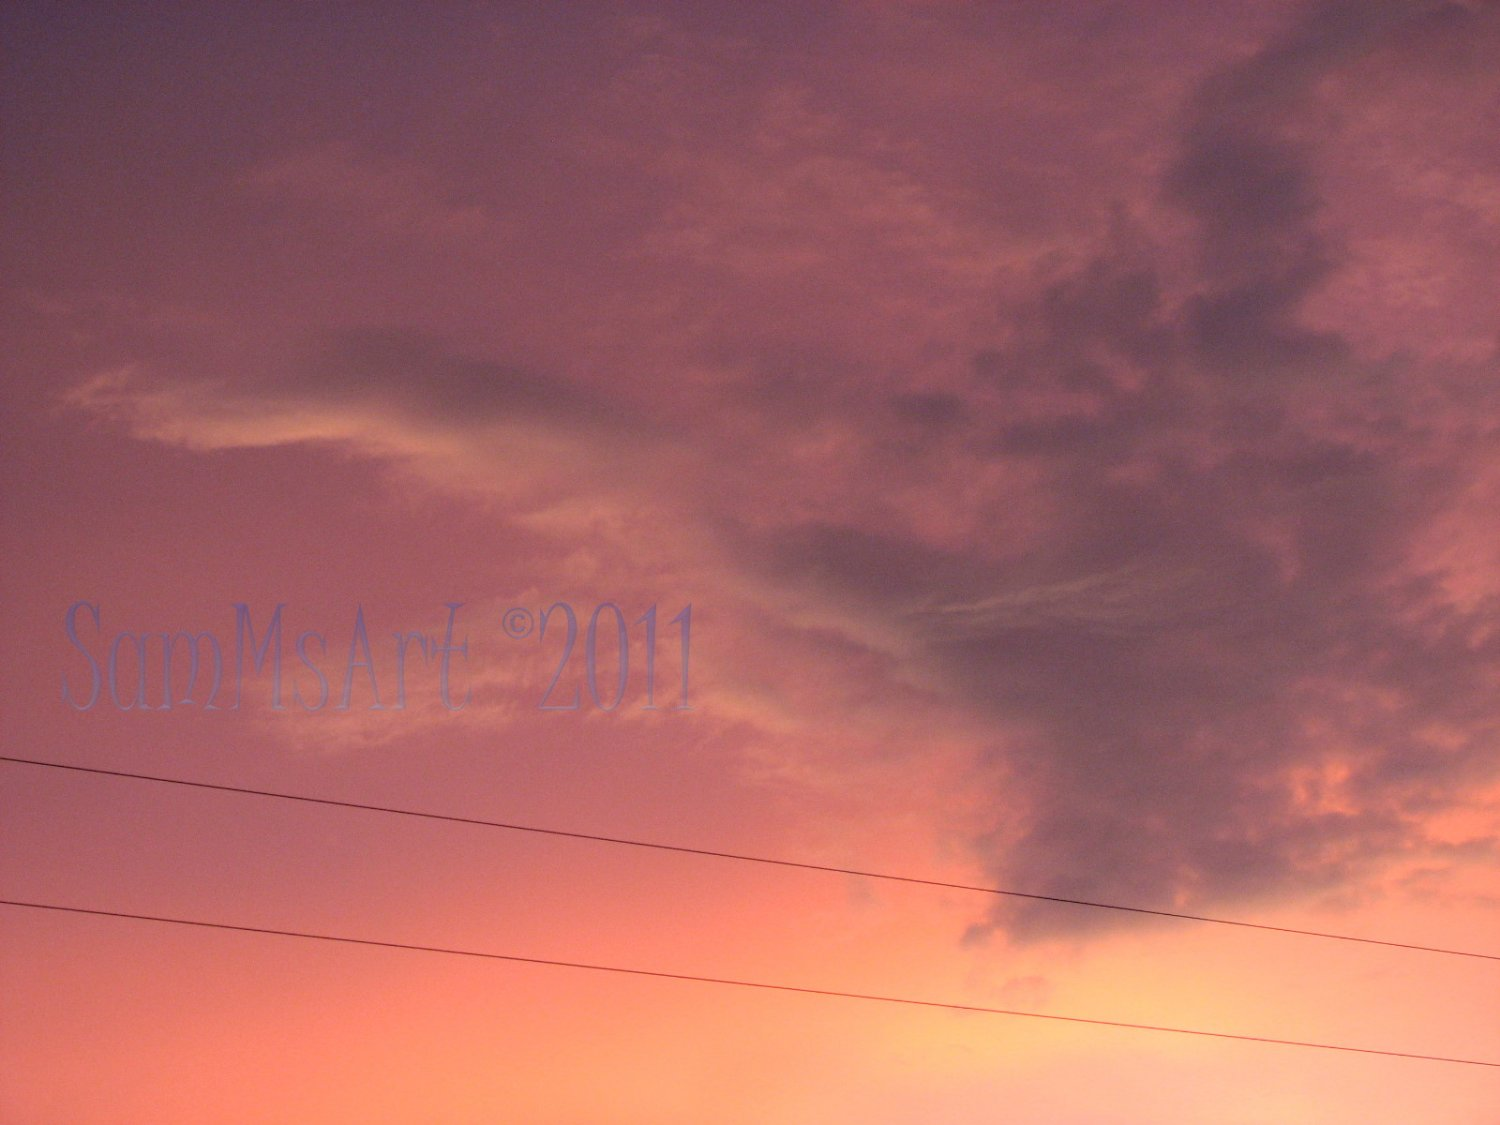 August 33 - 8x10 Print, Digital Fine Art Image Photo - Sunset, summer, fall, Power lines, Clouds